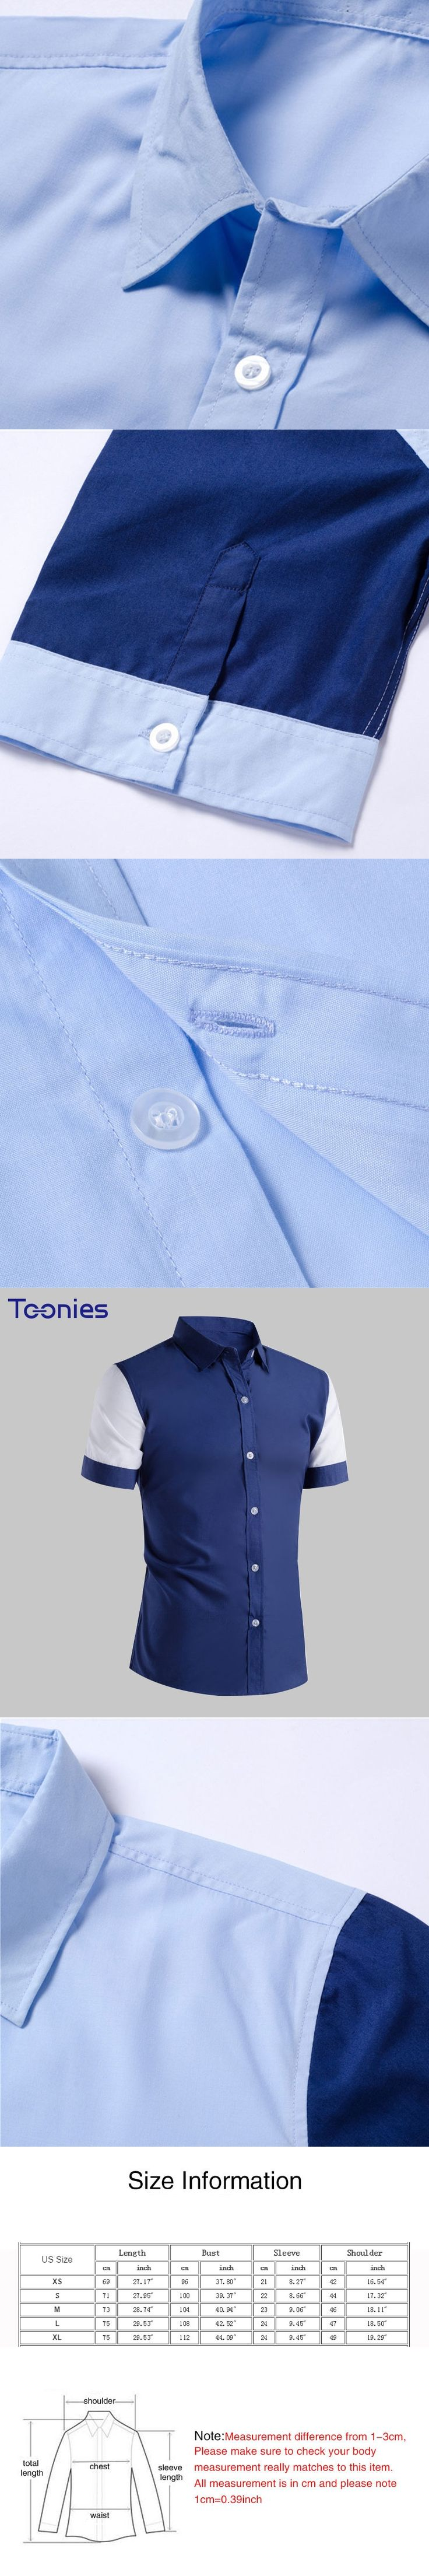 2018 New Fashion Mens Casual Blazer Shirt Male Short Sleeve Patchwork Camisa Masculina Para Hombre Blouse Chemise Homme Clothing